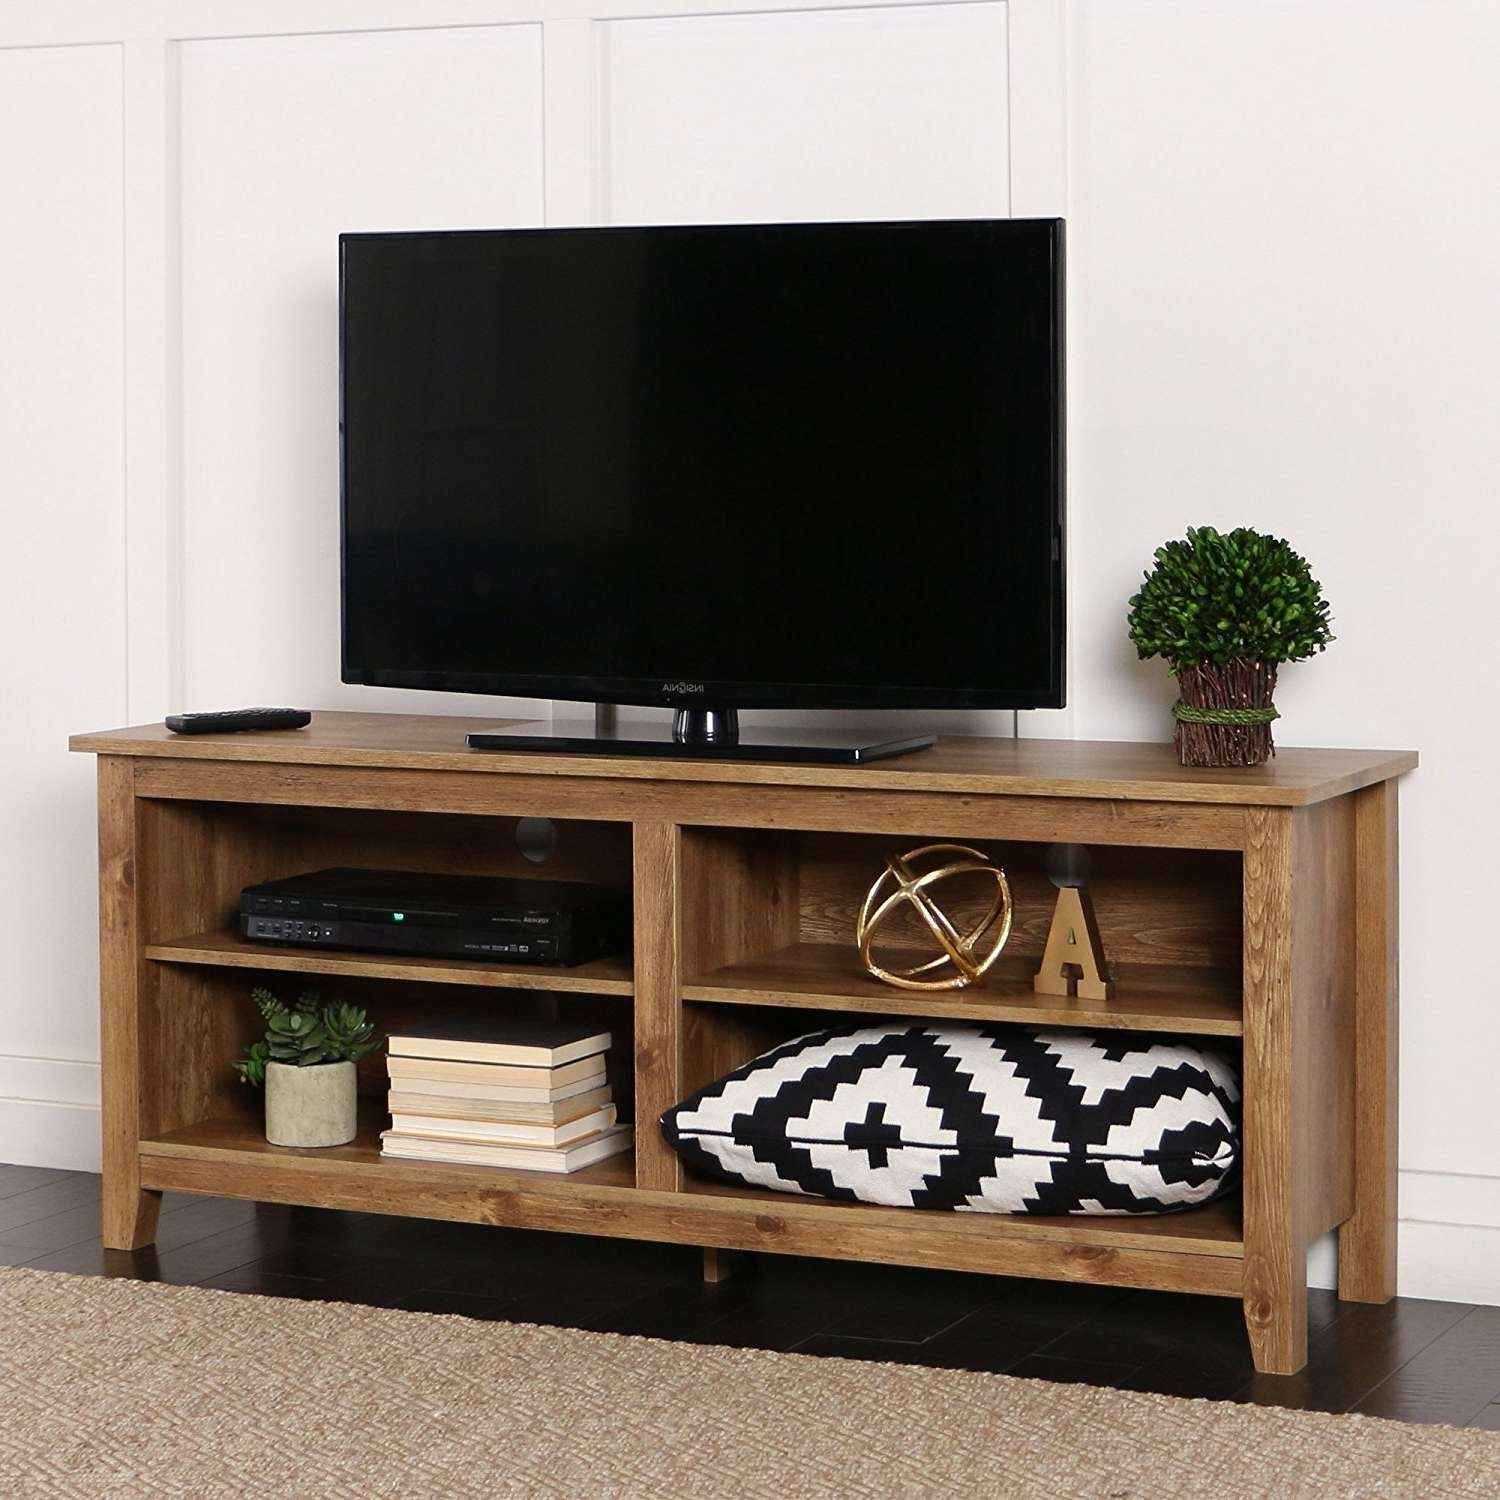 Tv Stand : Corner Tv Standnch Unforgettablemagenspirations Stands With Regard To Corner Tv Stands 40 Inch (View 5 of 20)